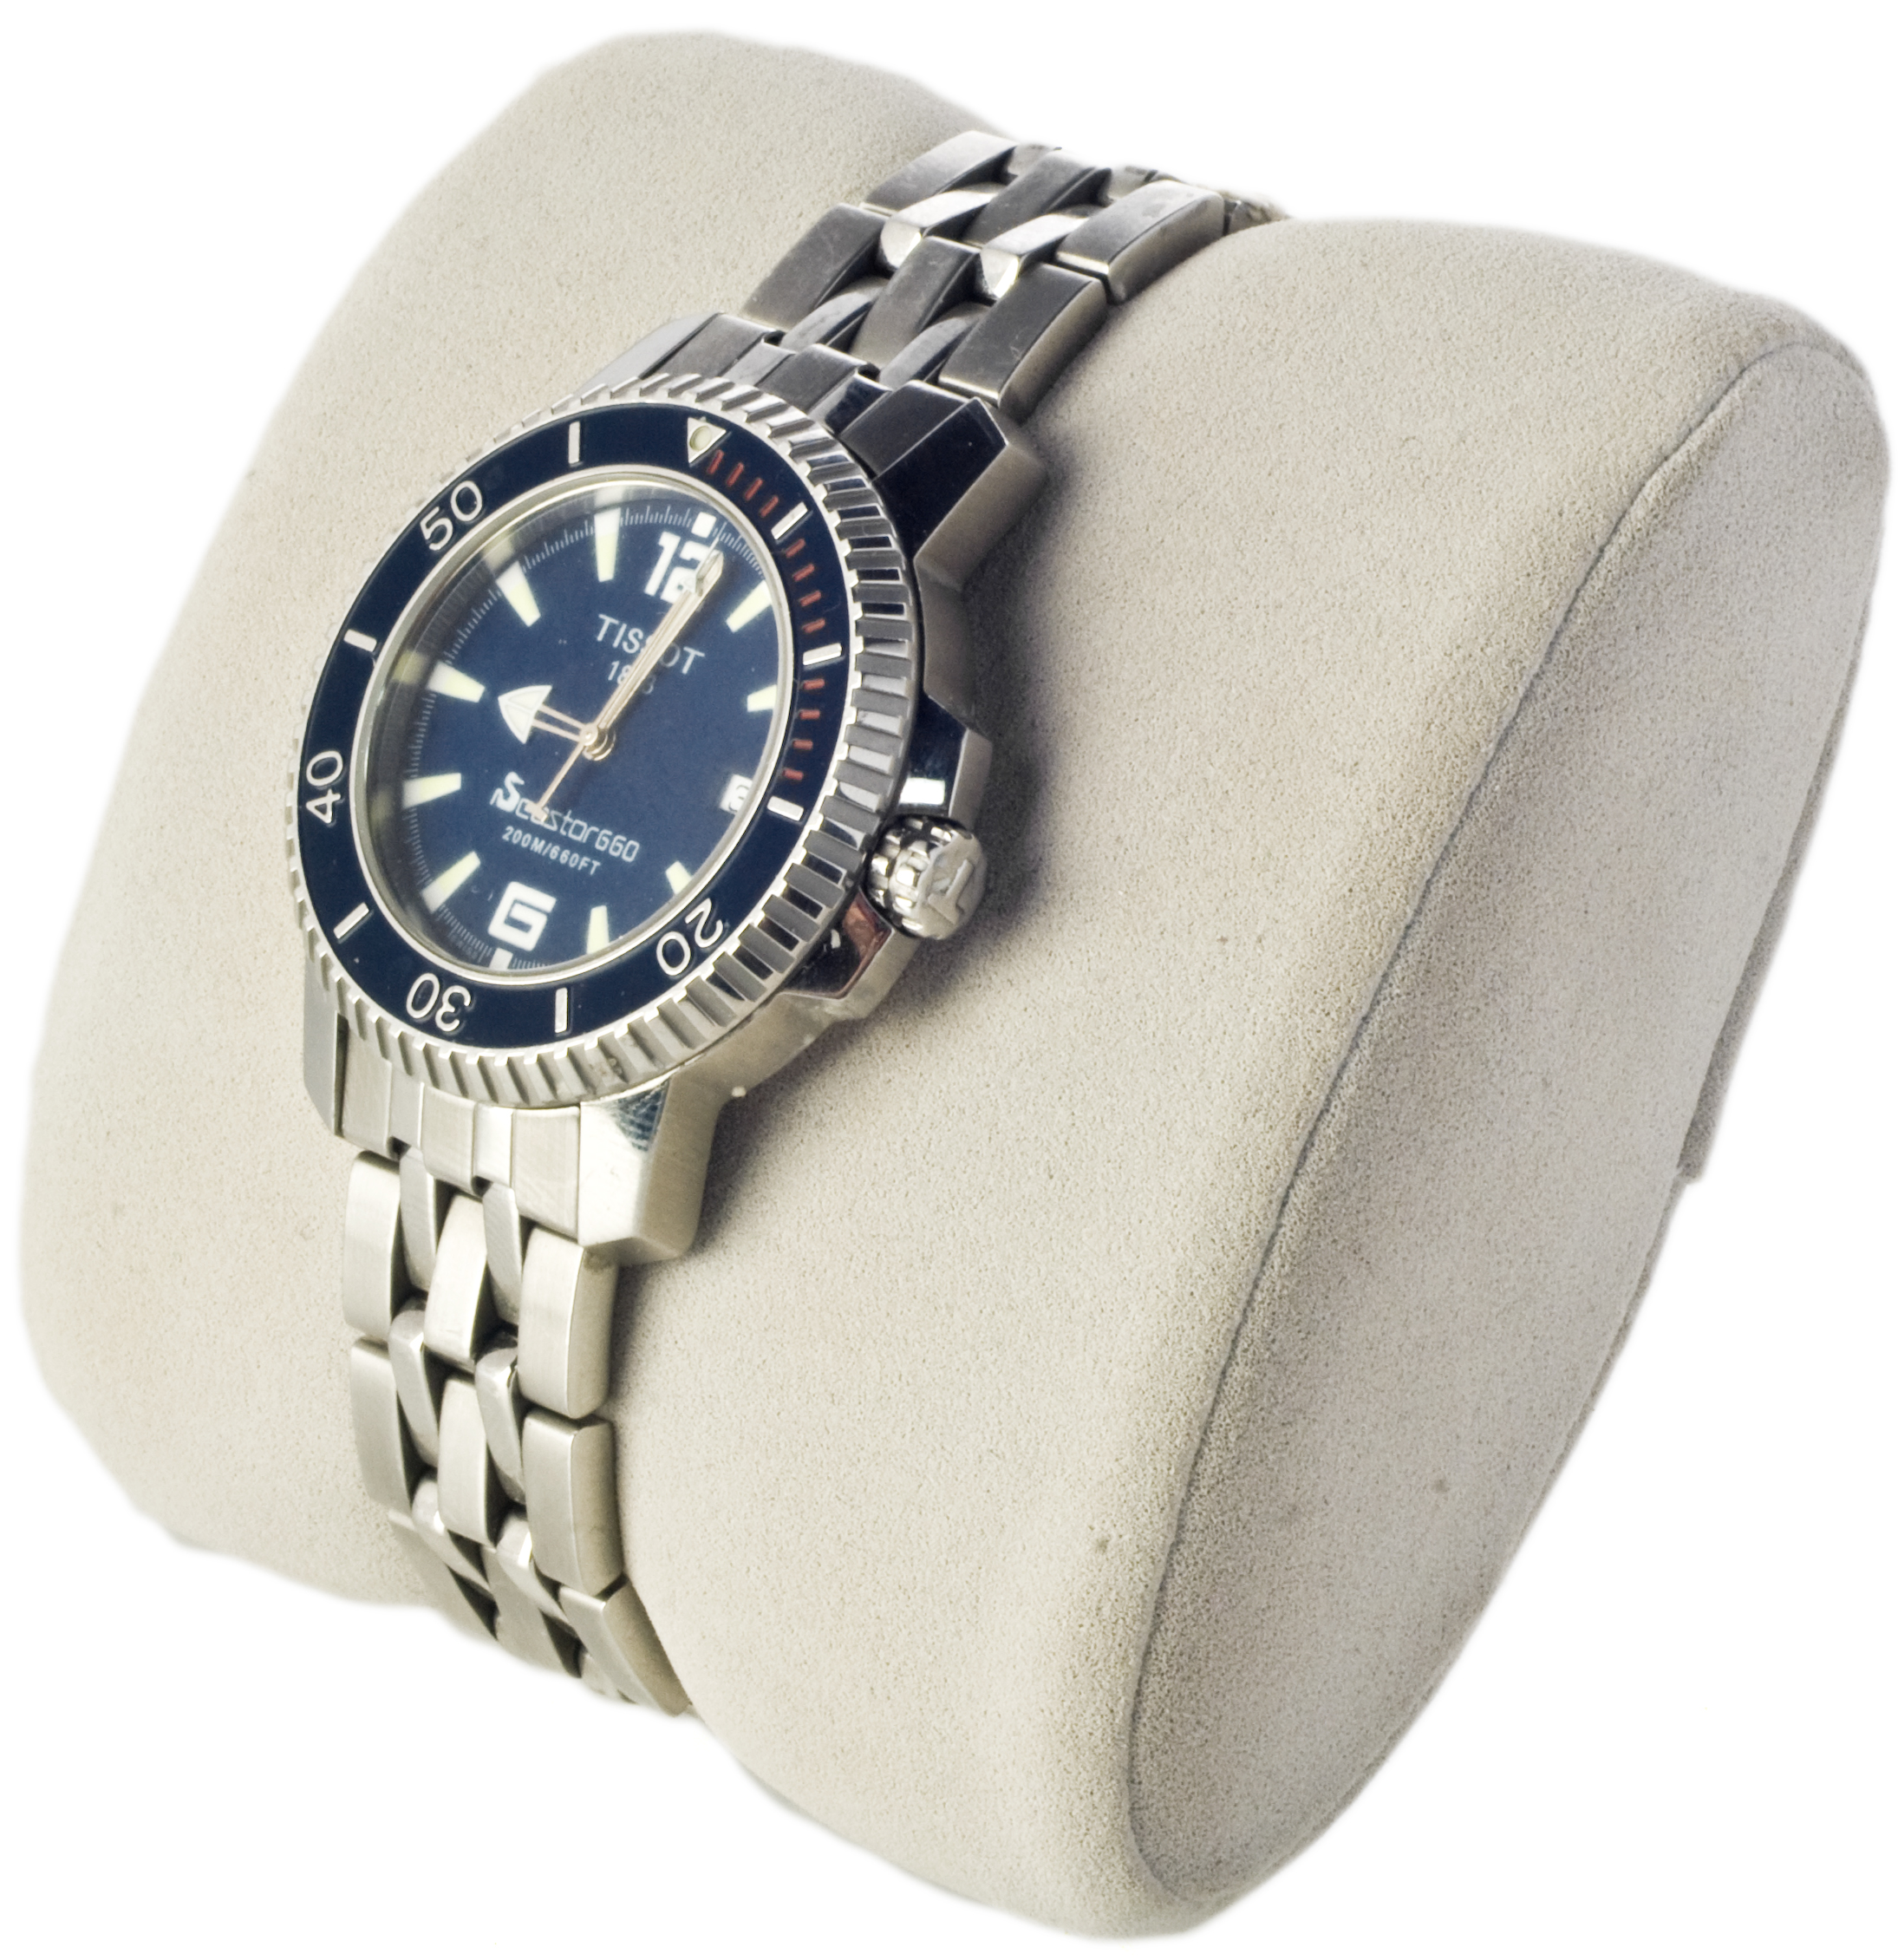 lightbox shop open image waterproof in watches boutique front corniche heritage online